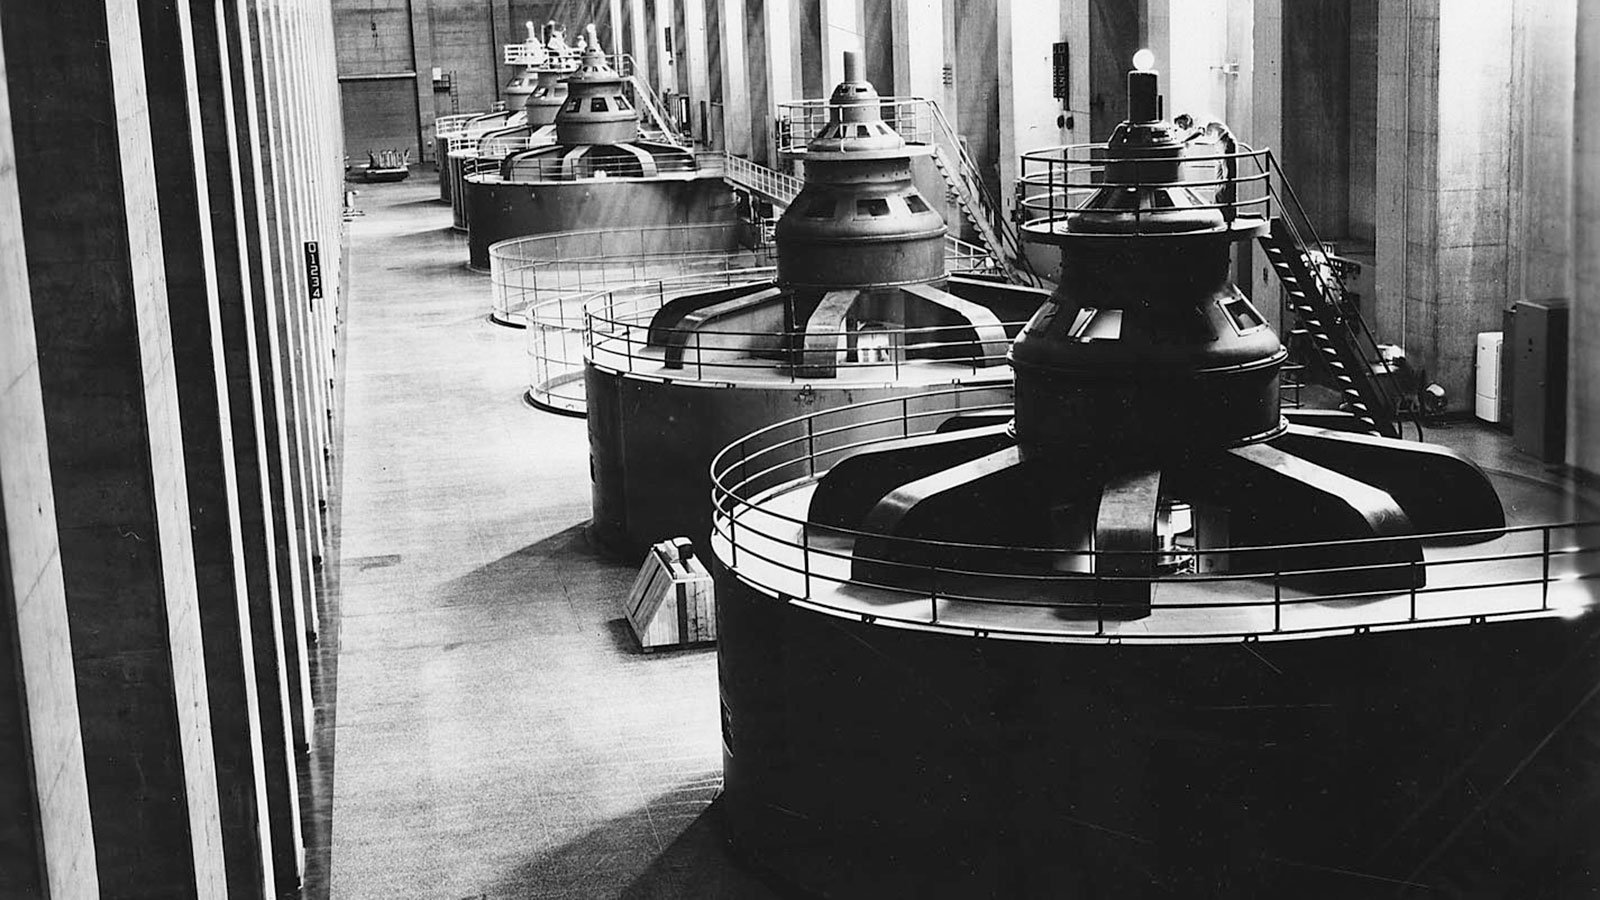 The first electric generator at Hoover Dam went into operation on October 26, 1936